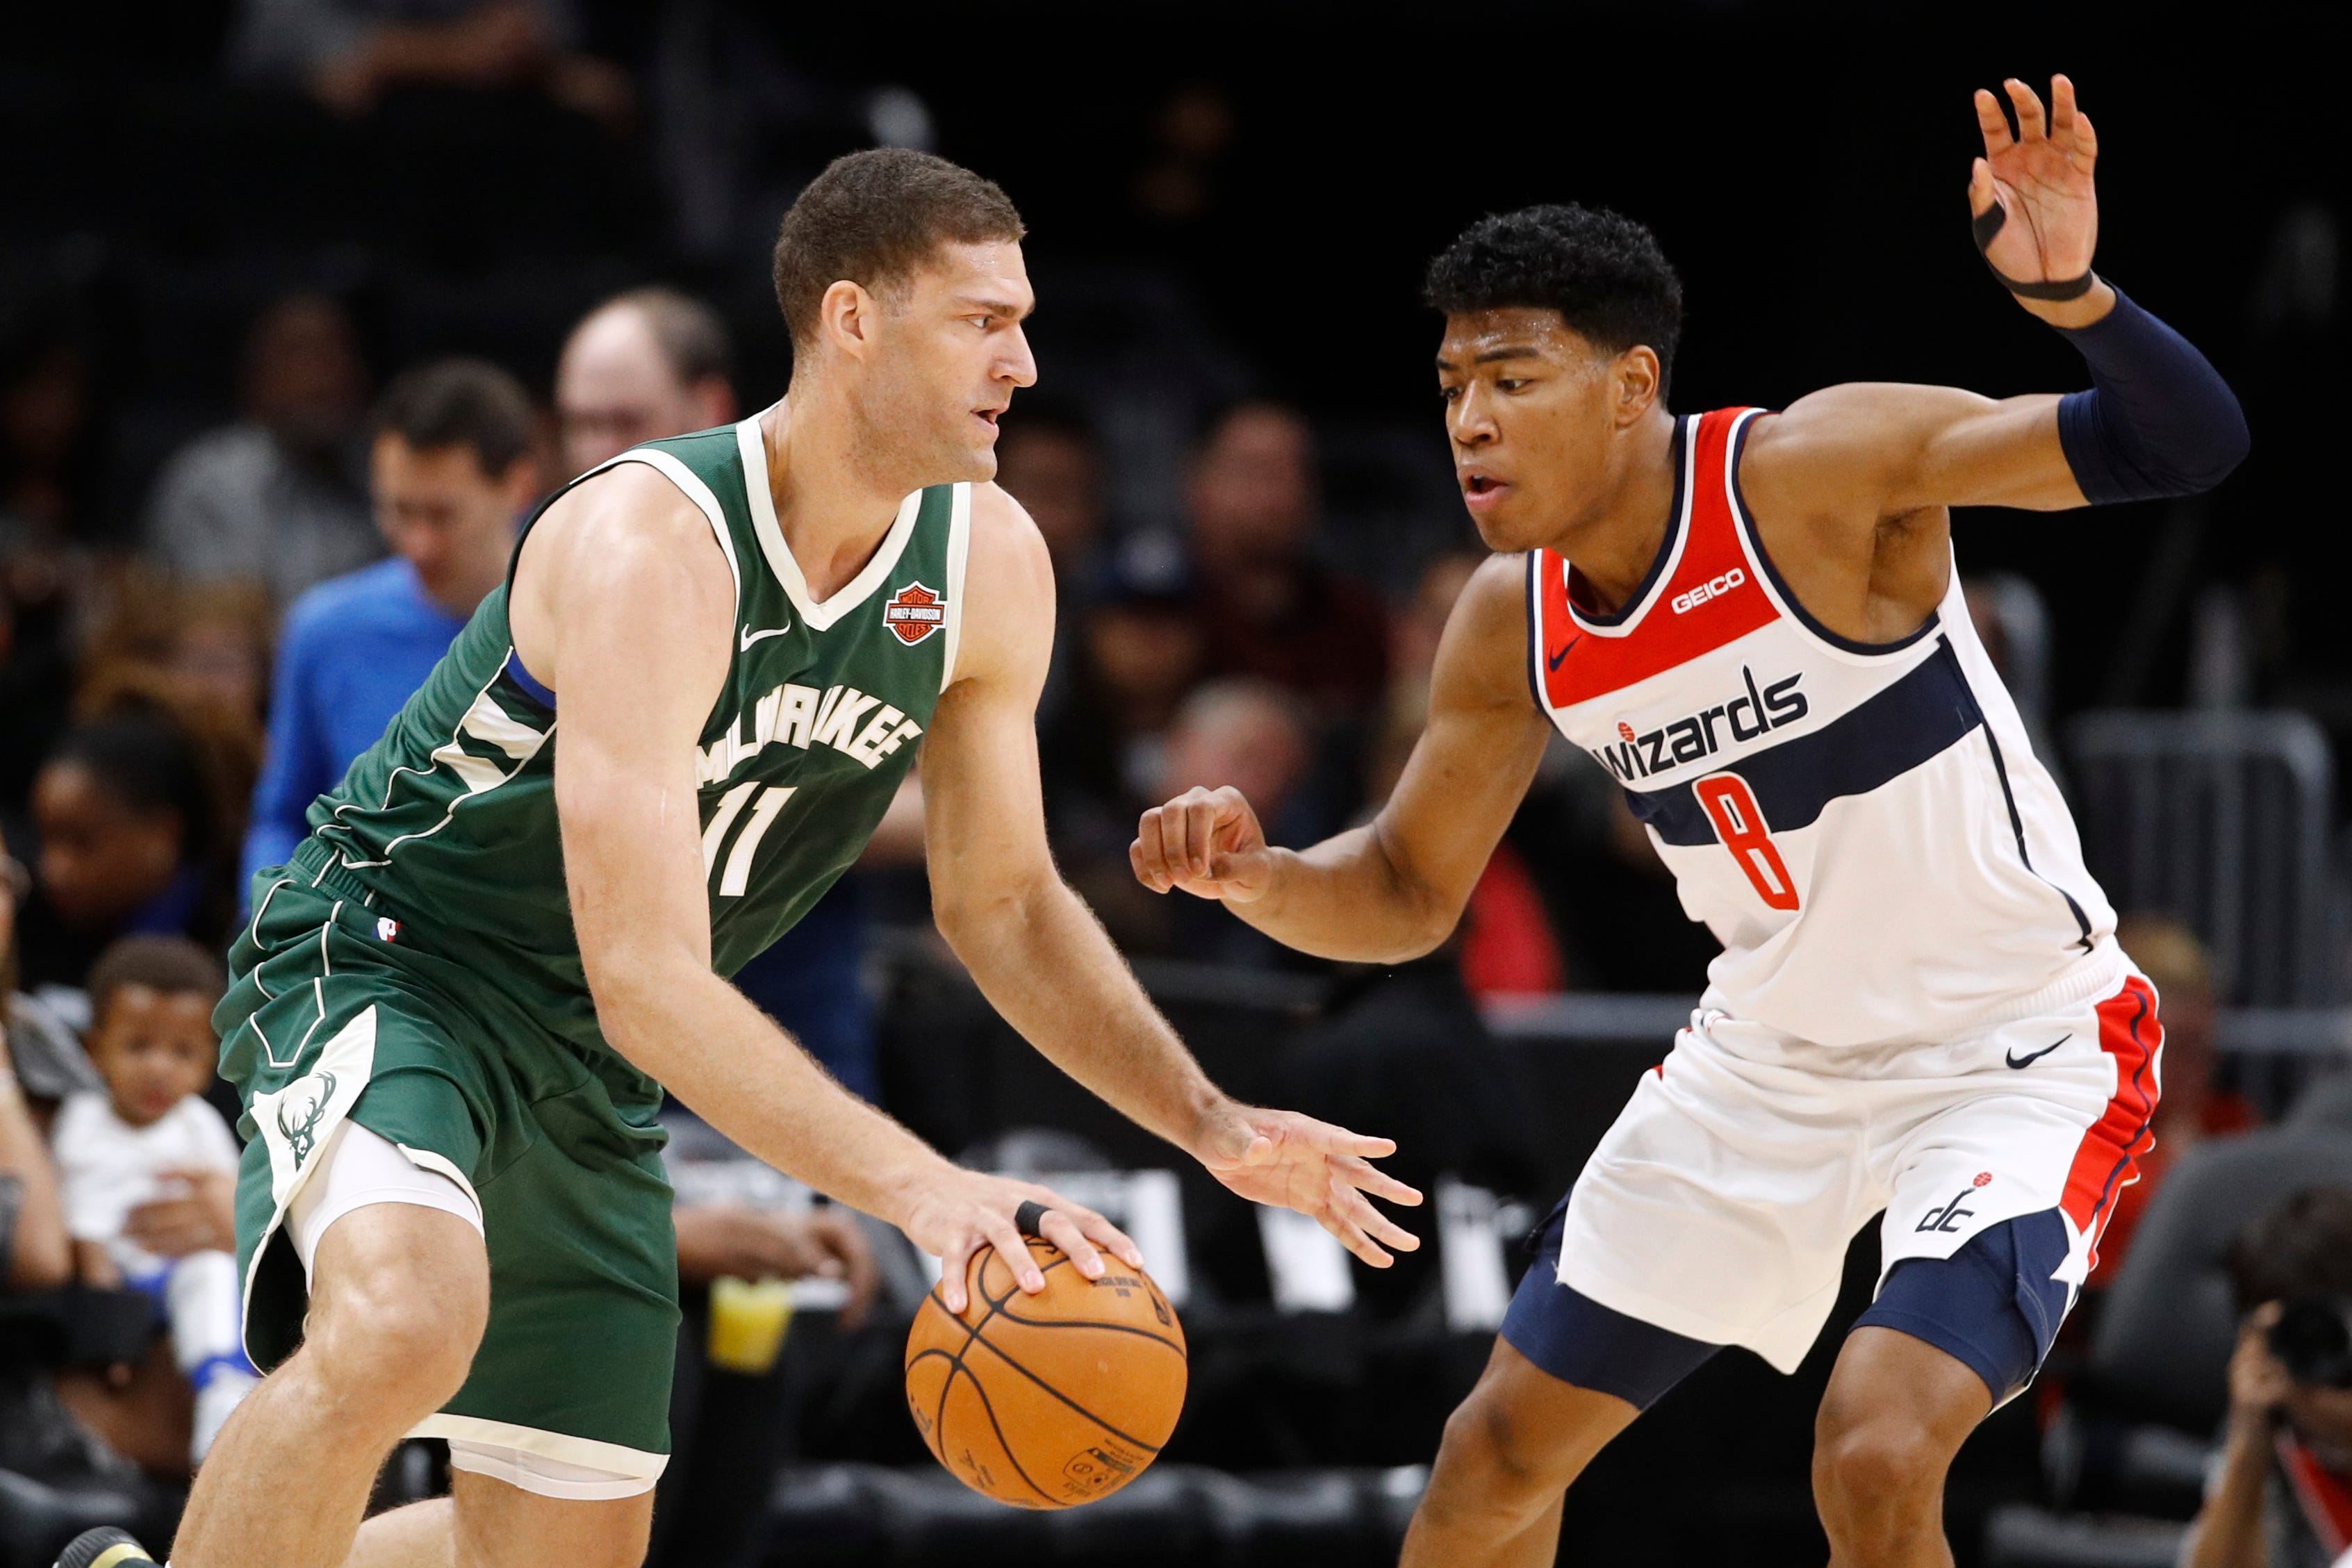 Photos from the Bucks' preseason victory over the Wizards in our nation's capital